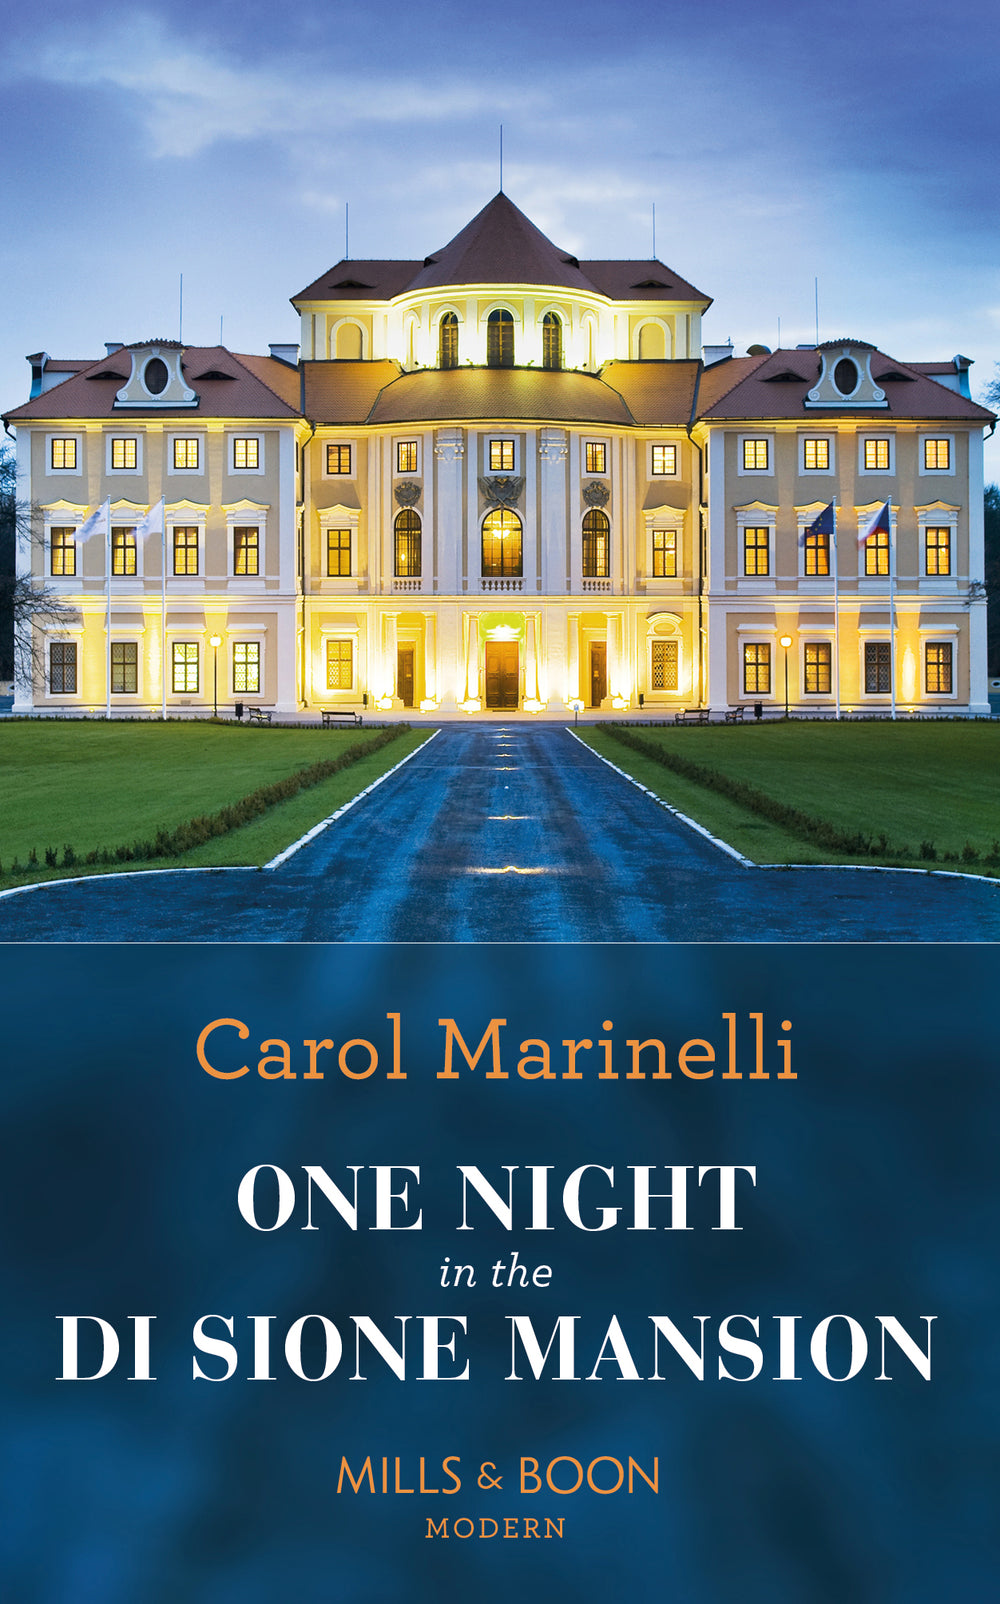 One Night in the Di Sione Mansion - Chapter 3